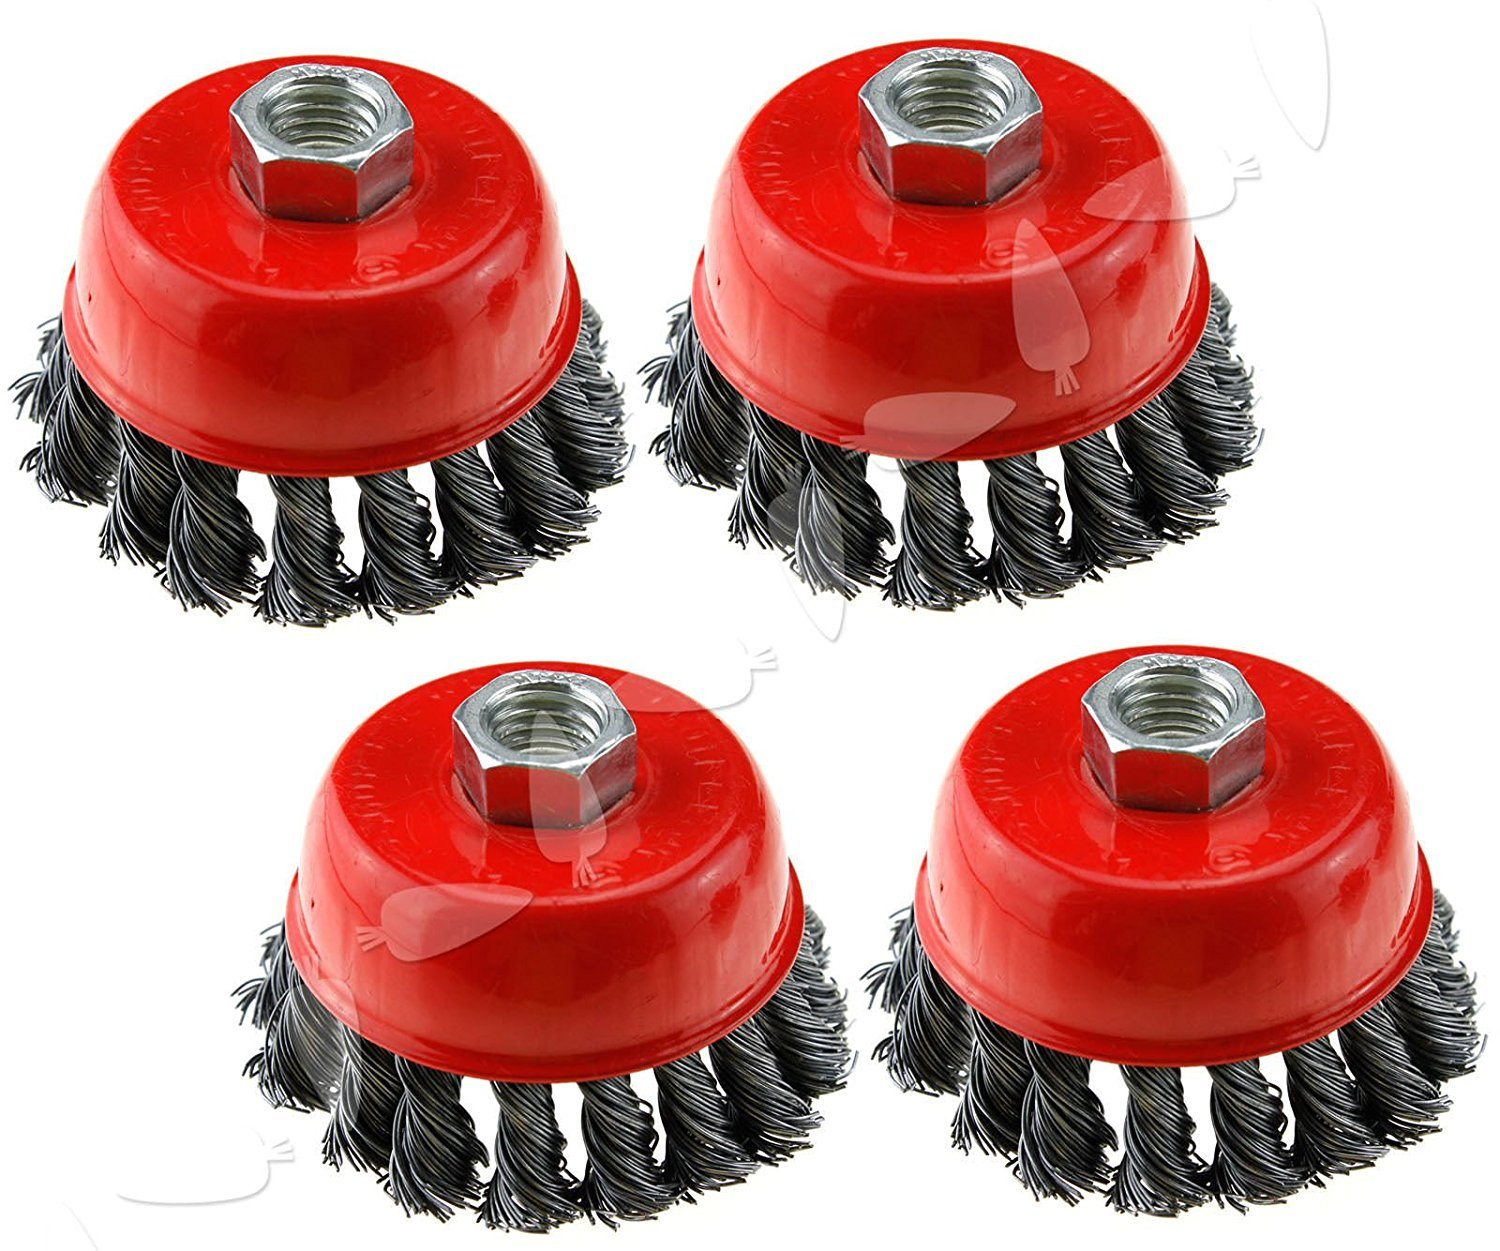 5-Inch (8 Pieces) Twist Knot Carbon Steel Wire Cup Brush metalworking surface treatment rust paints corrosion remove burnishing wheel fits Dewalt Roxx Tools Makita Metabo 5/8-11 grinder polisher